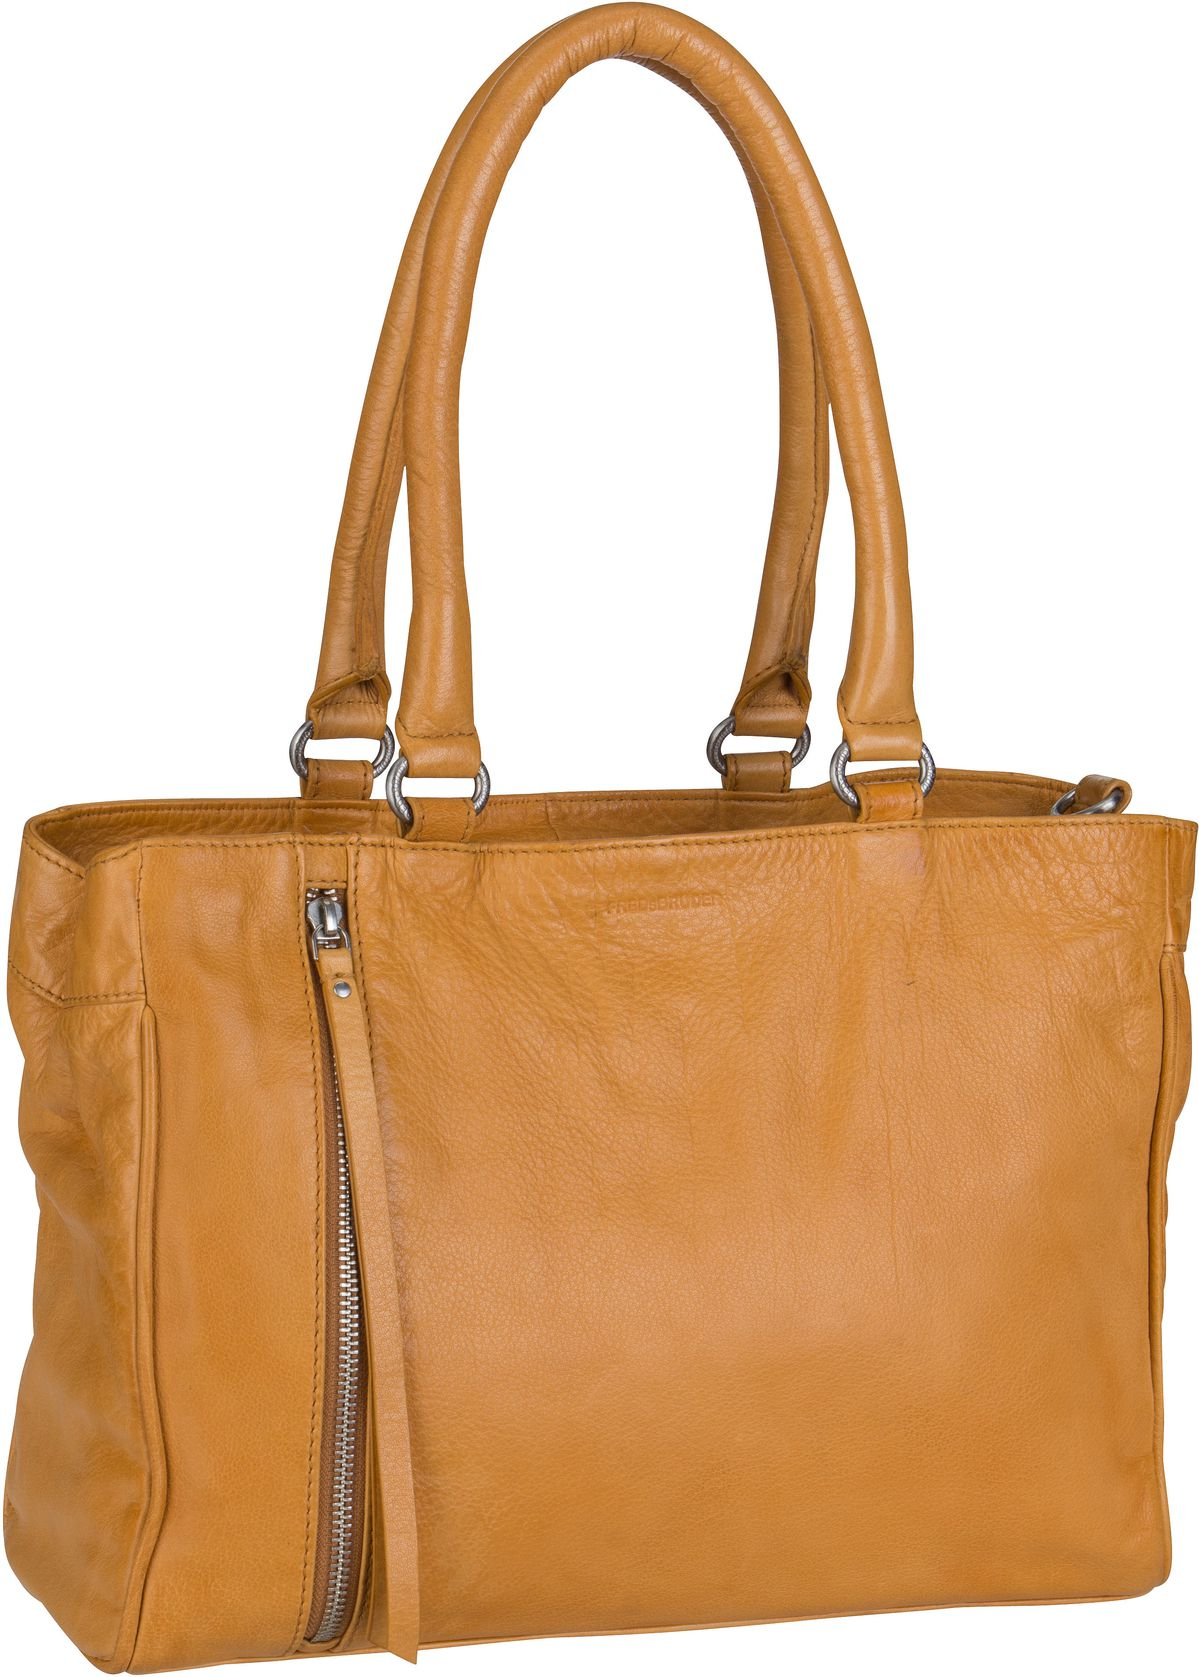 Handtasche Oomph Pep Light Camel